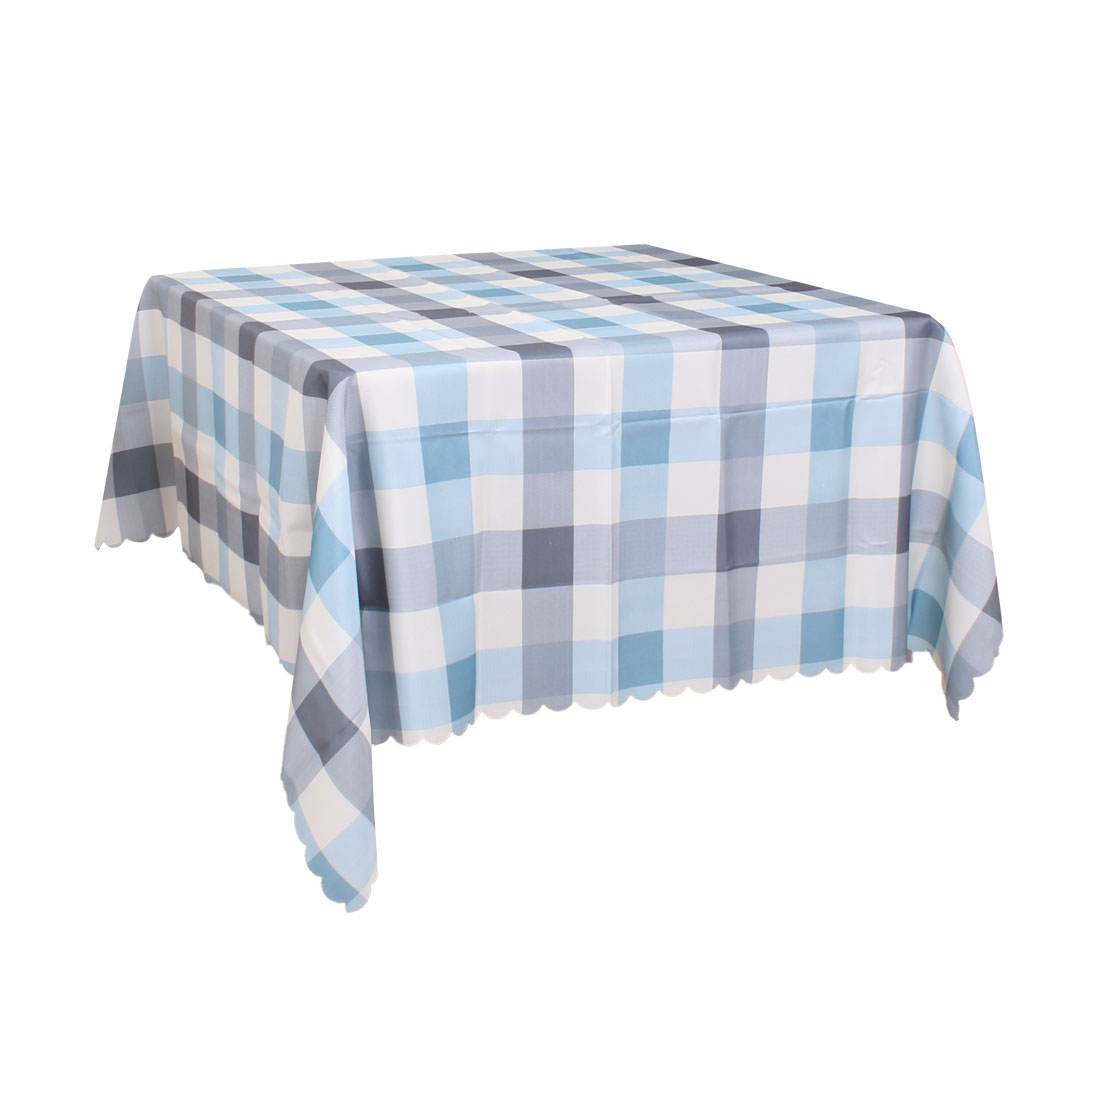 """Plaid Pattern Soft Tablecloths Cotton-linen Table Cover Kitchen for Party Wedding 55"""" x 55"""", #3"""